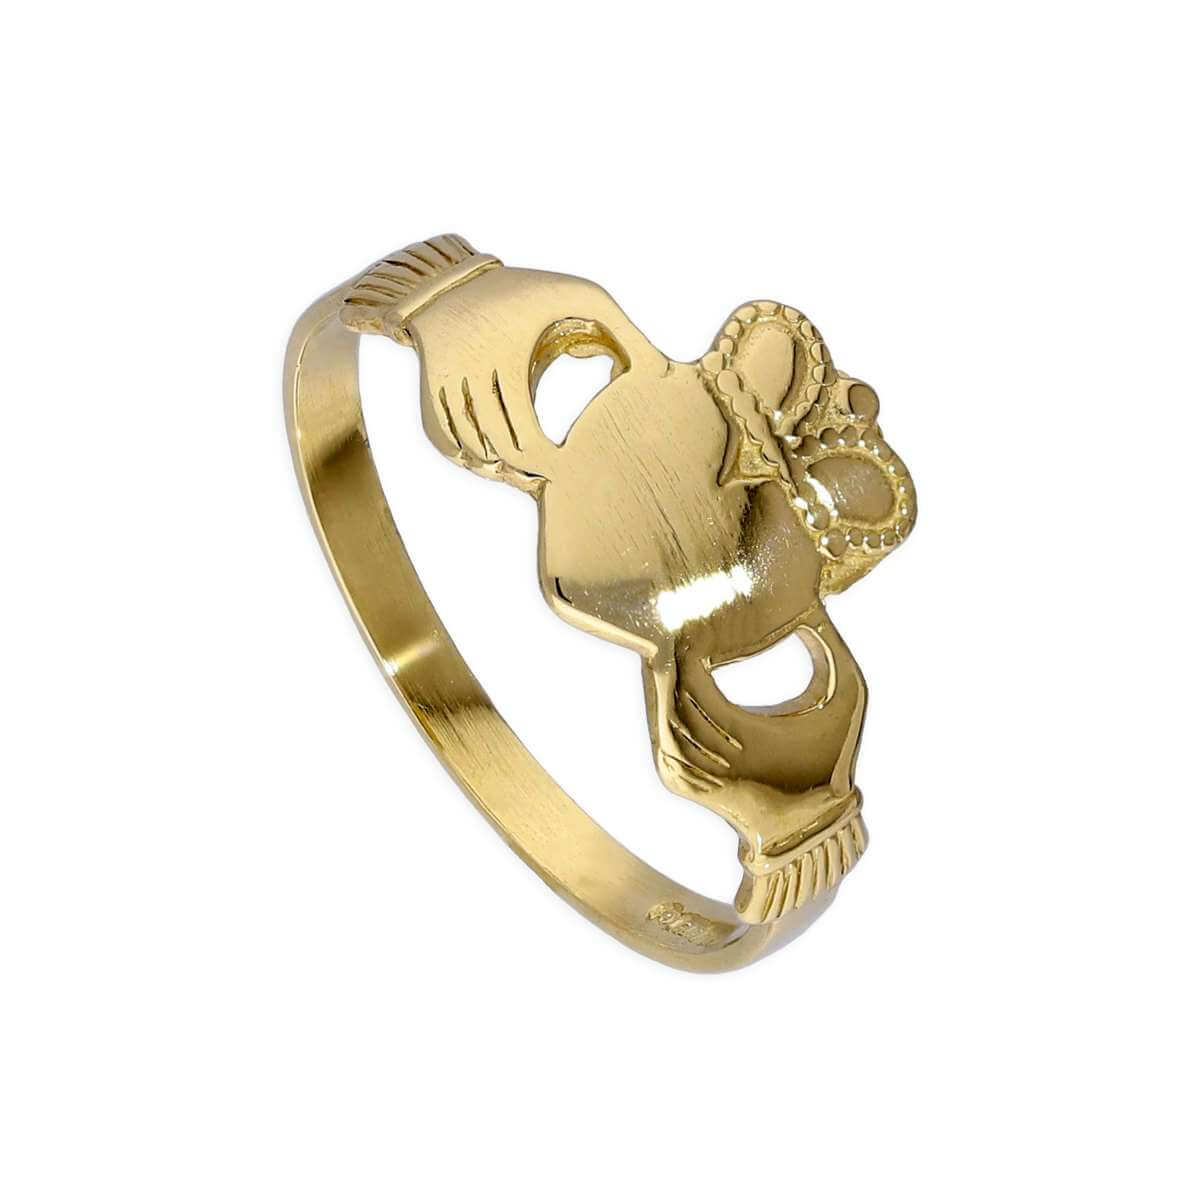 9ct Gold Engravable Teenage Claddagh Ring Size F - M